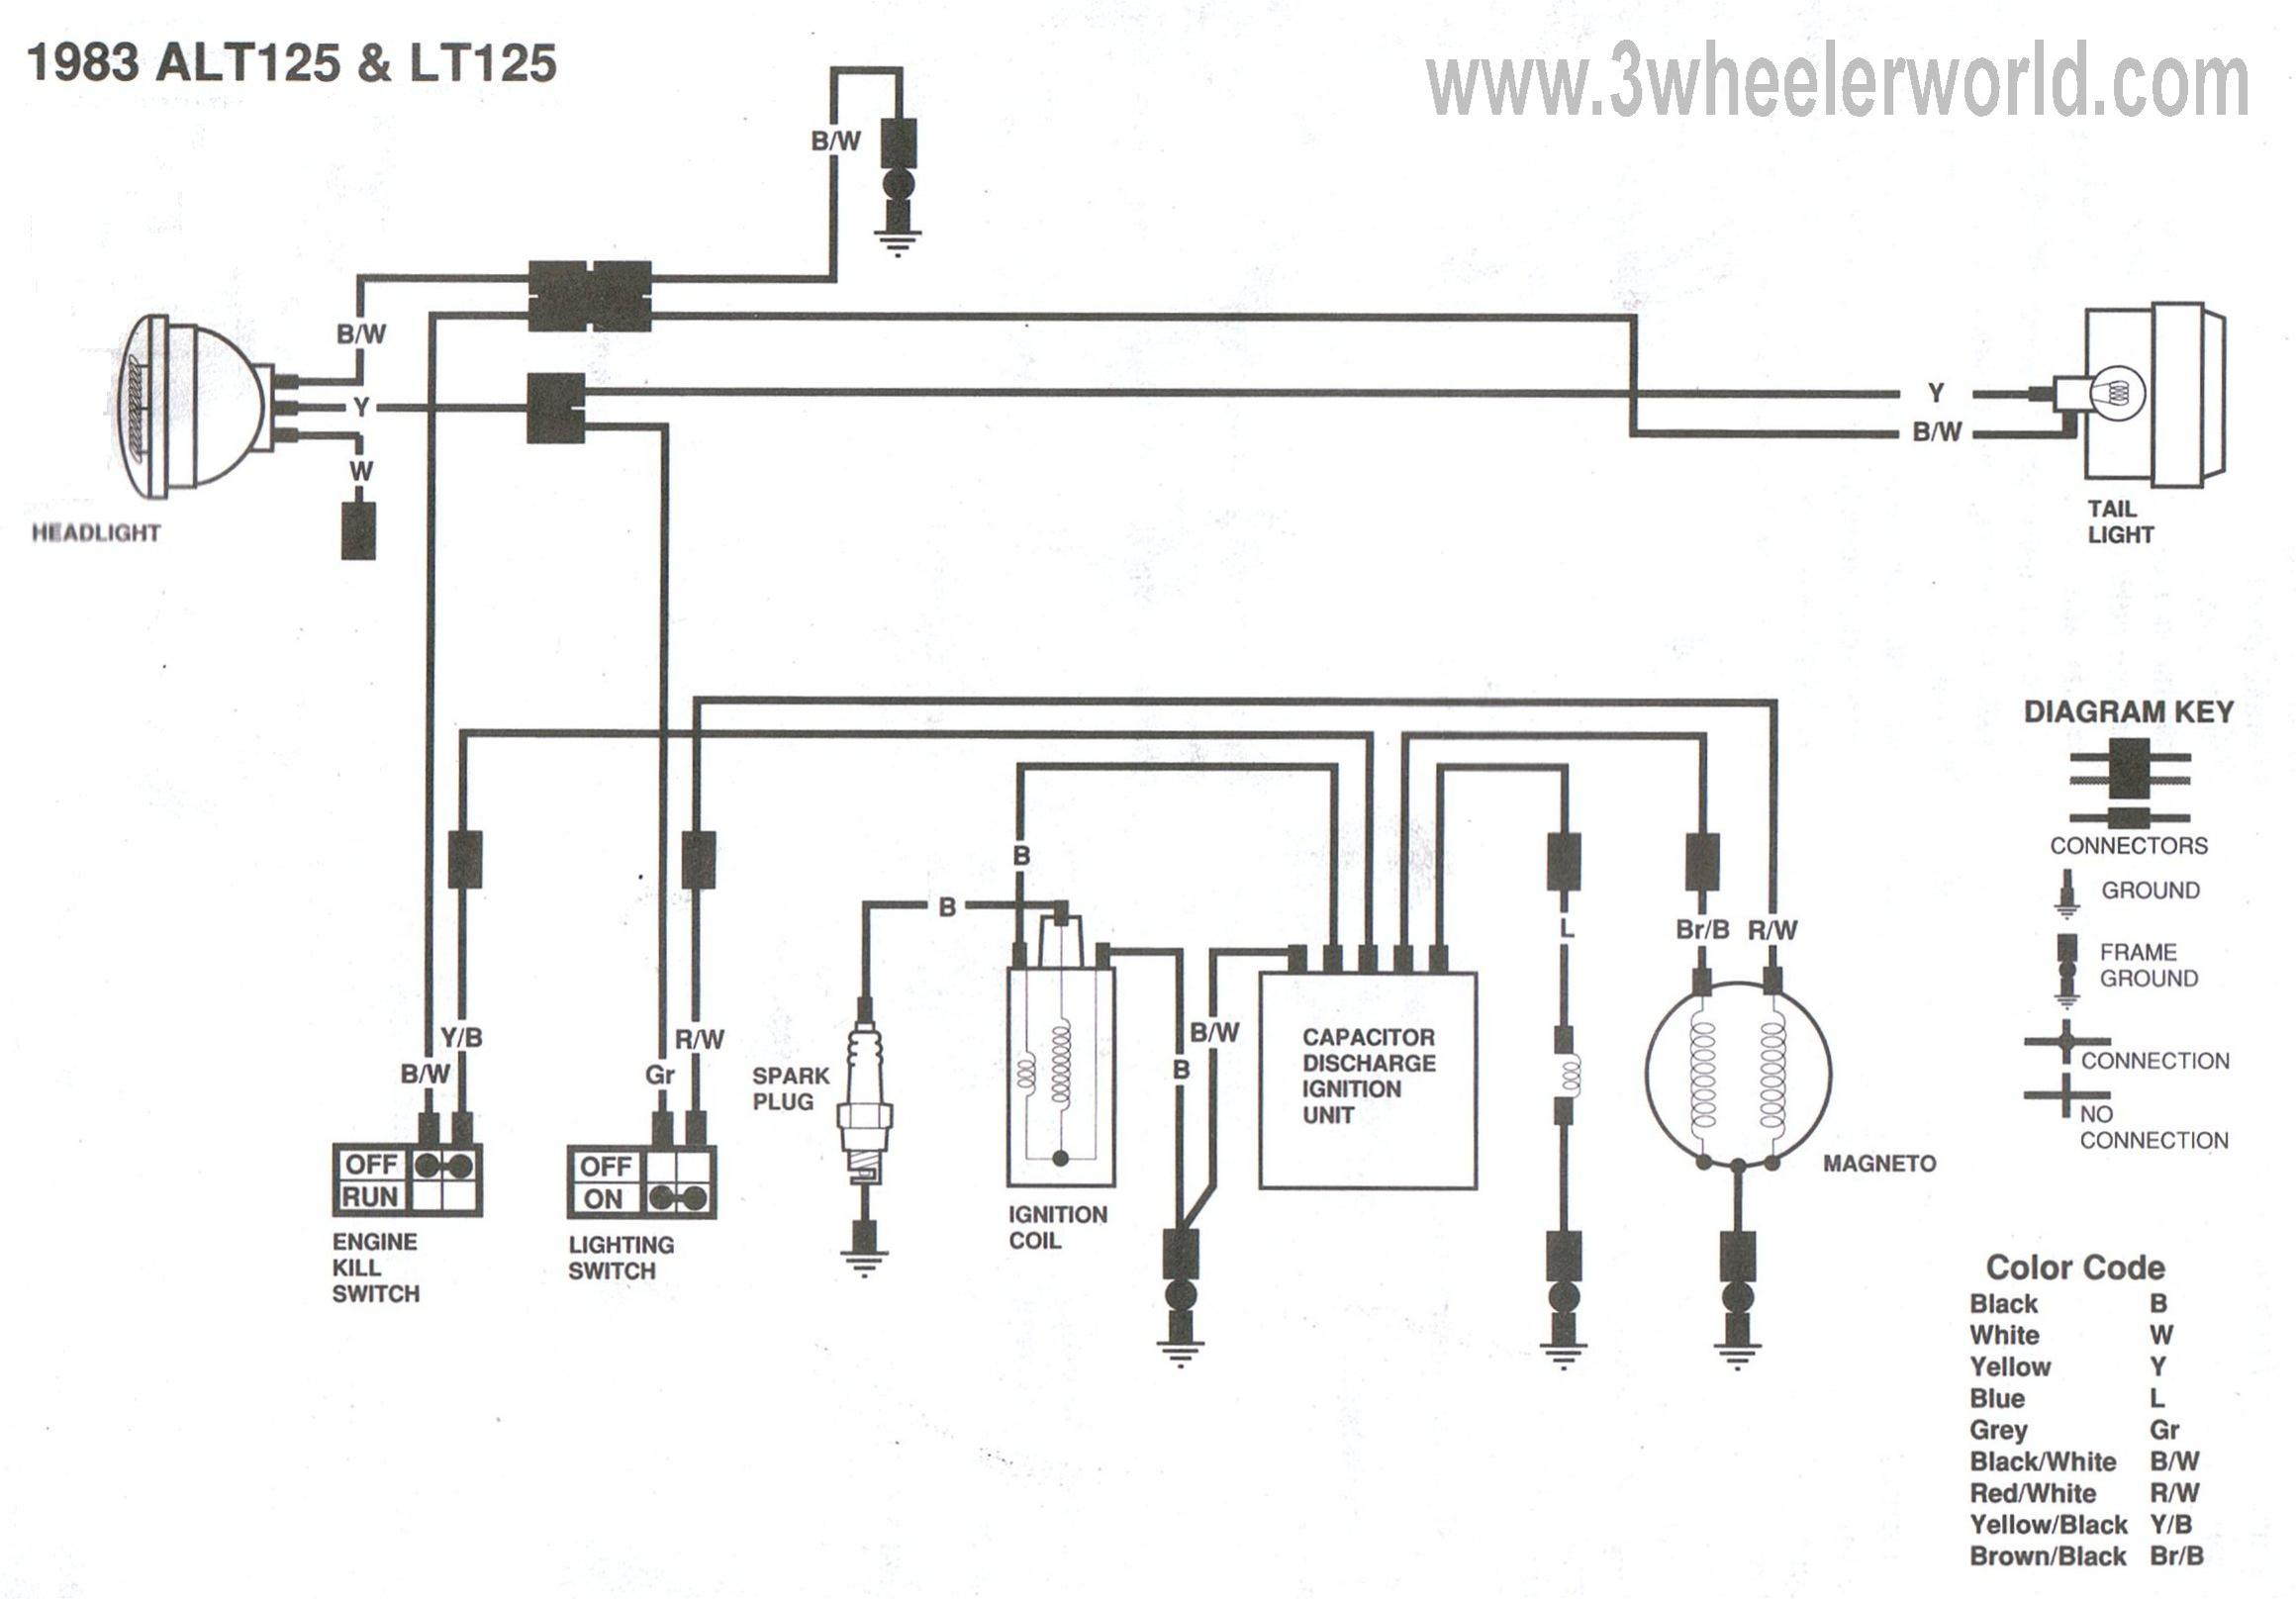 3wheeler world suzuki wiring diagrams wiring diagrams